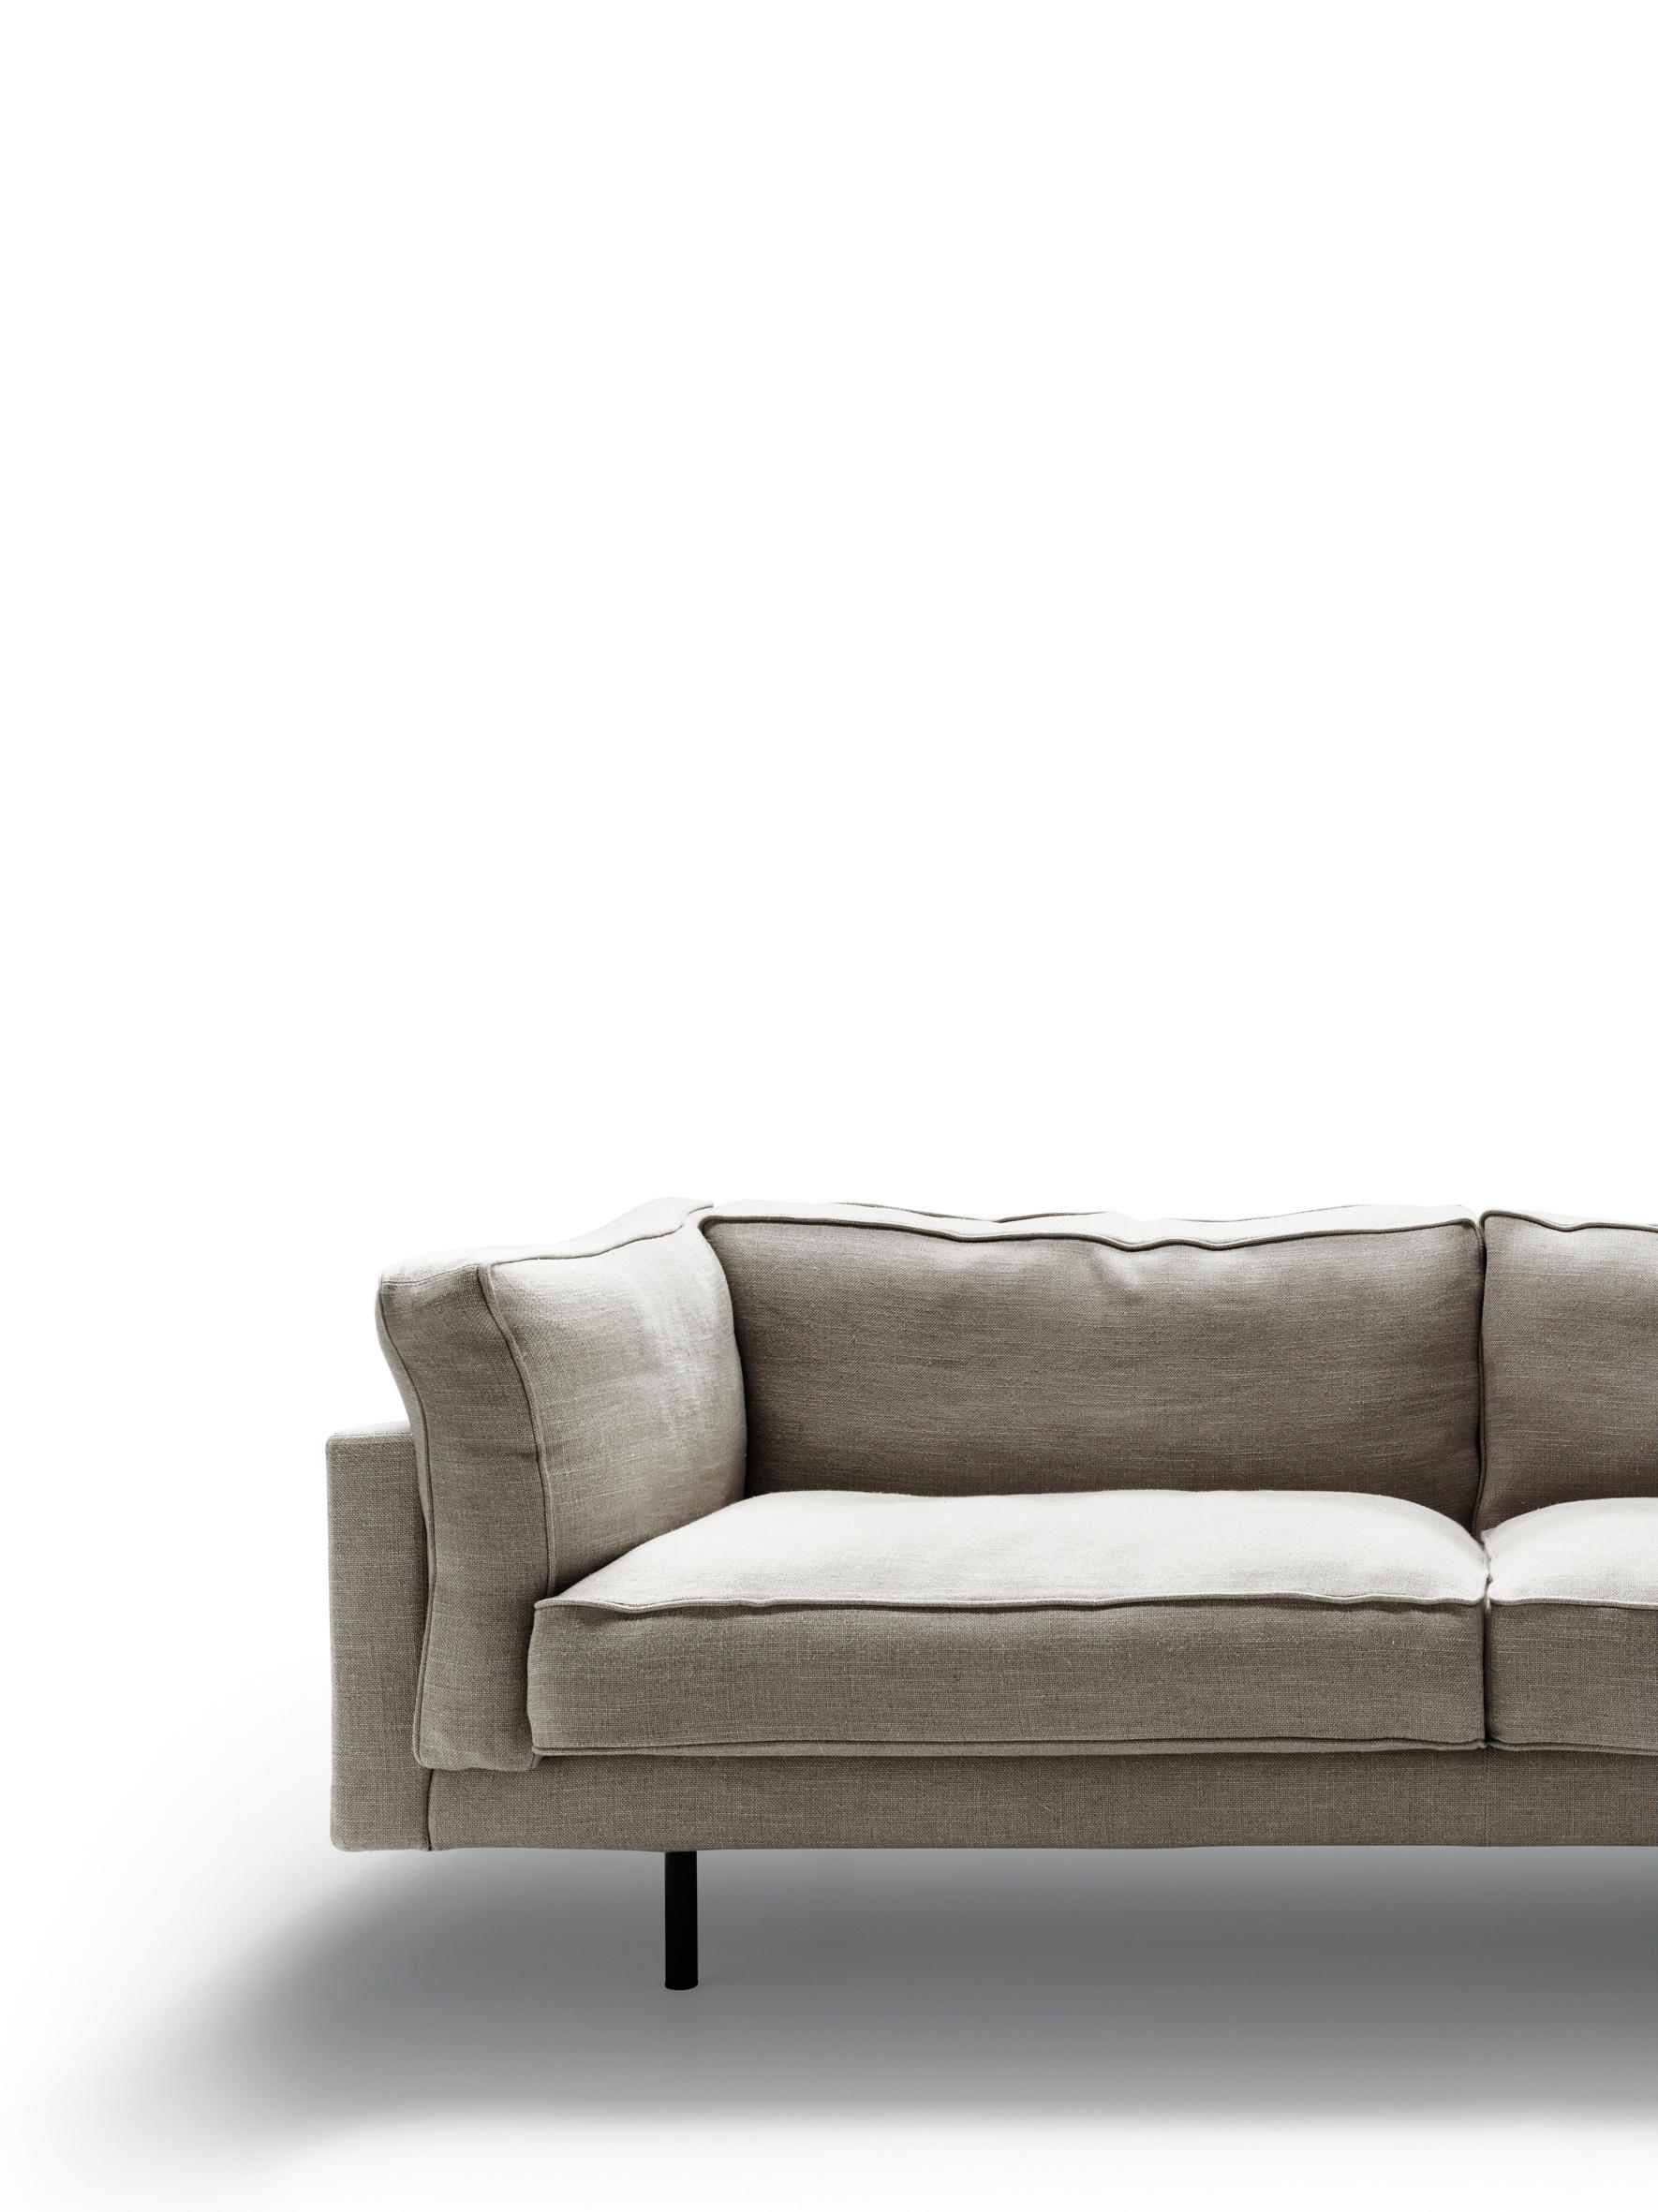 Square Sofa Square 16 Sofas From De Padova Architonic